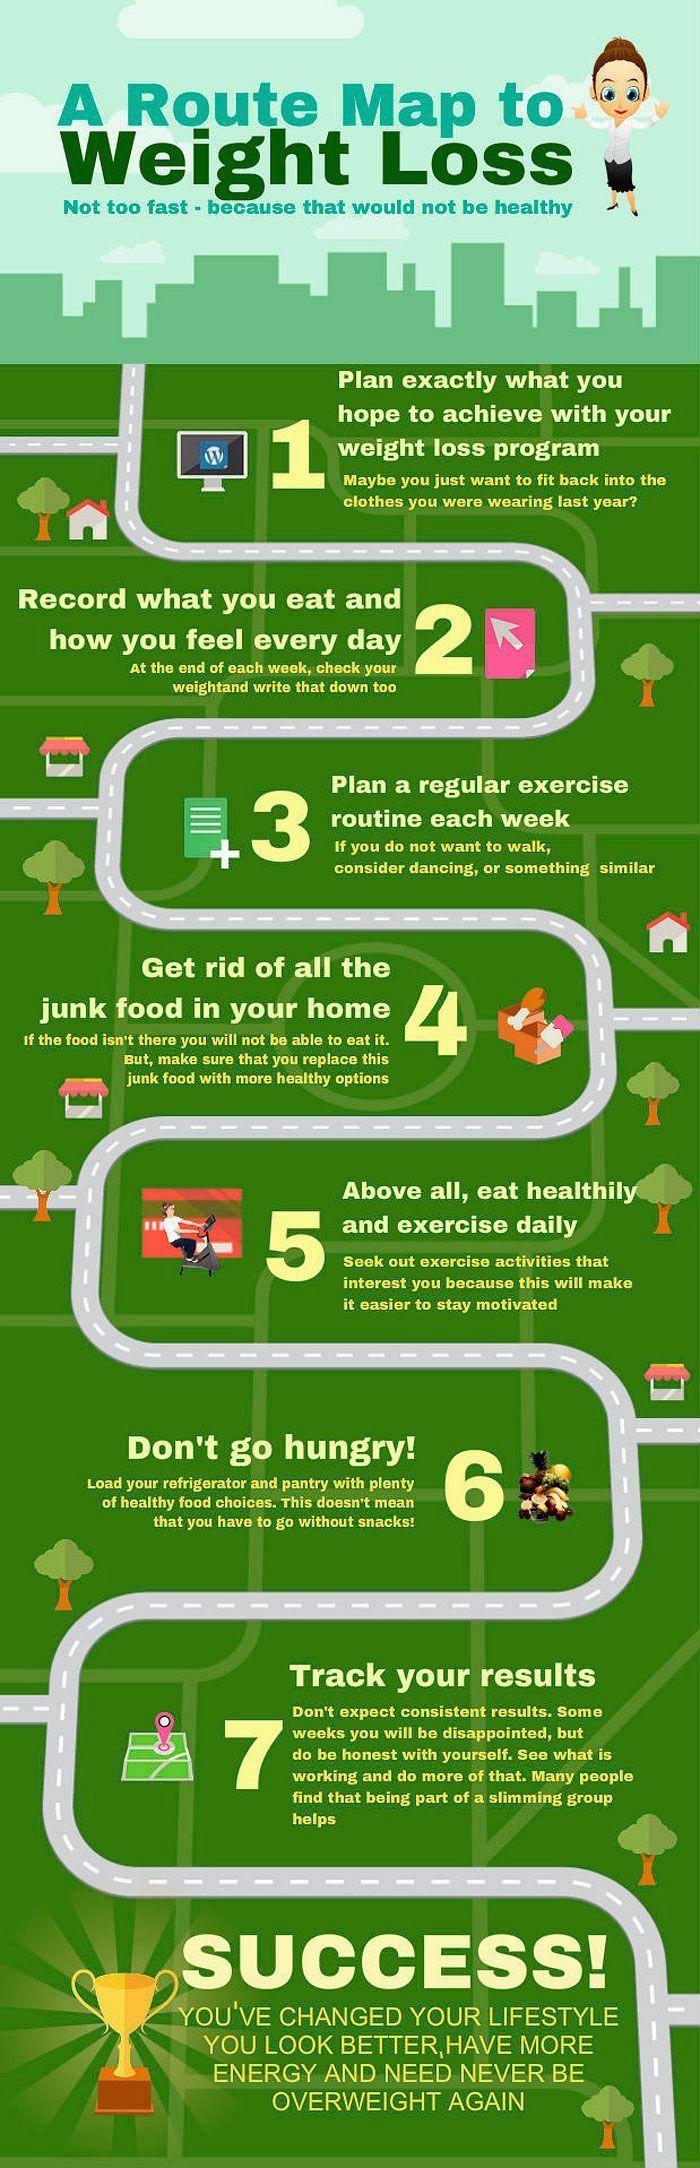 Route map to weight loss